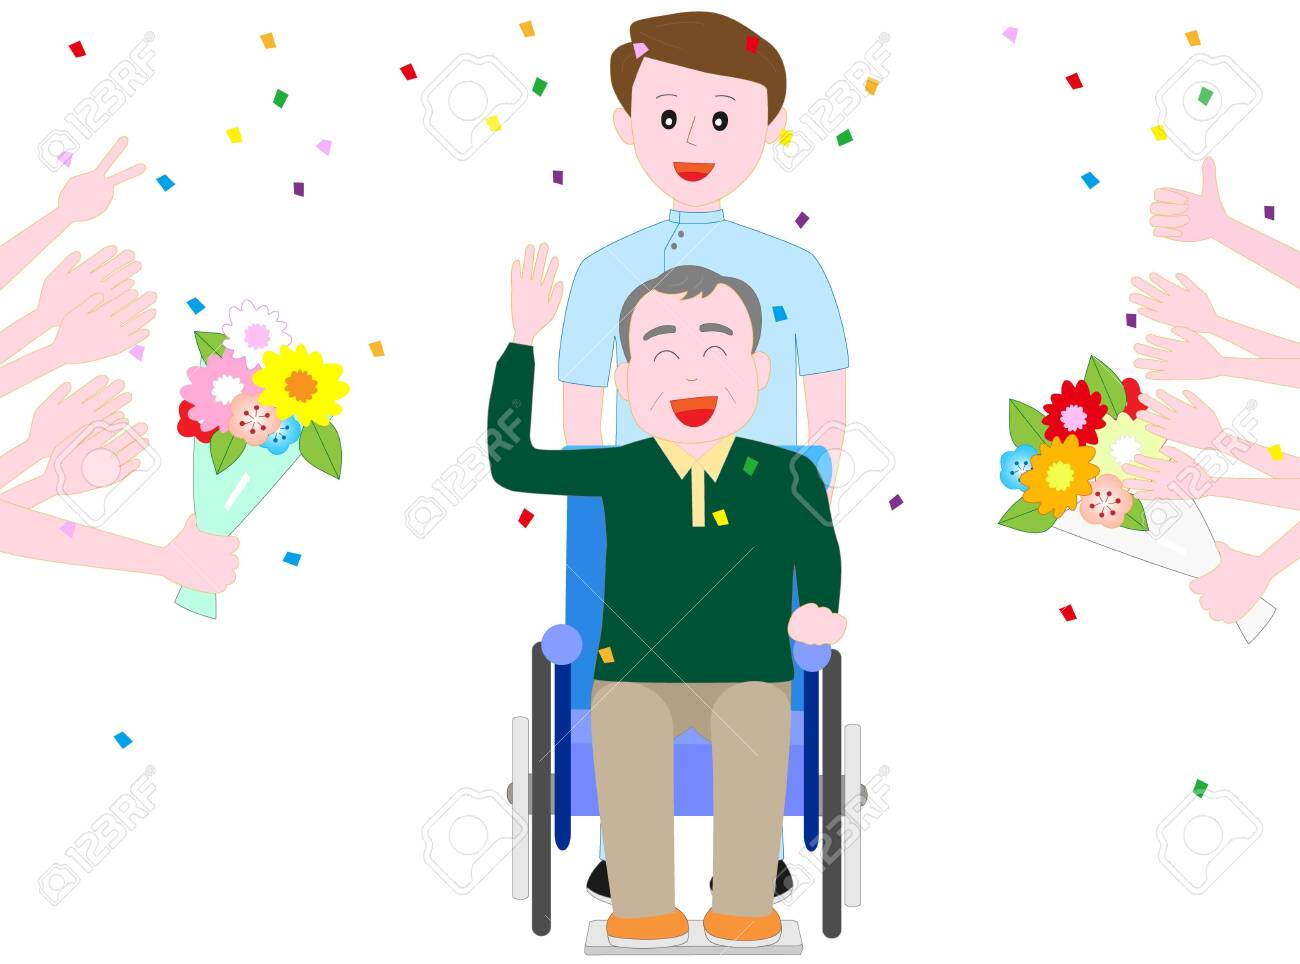 They give a bouquet of flowers to an elderly person in a wheelchair - 146736184